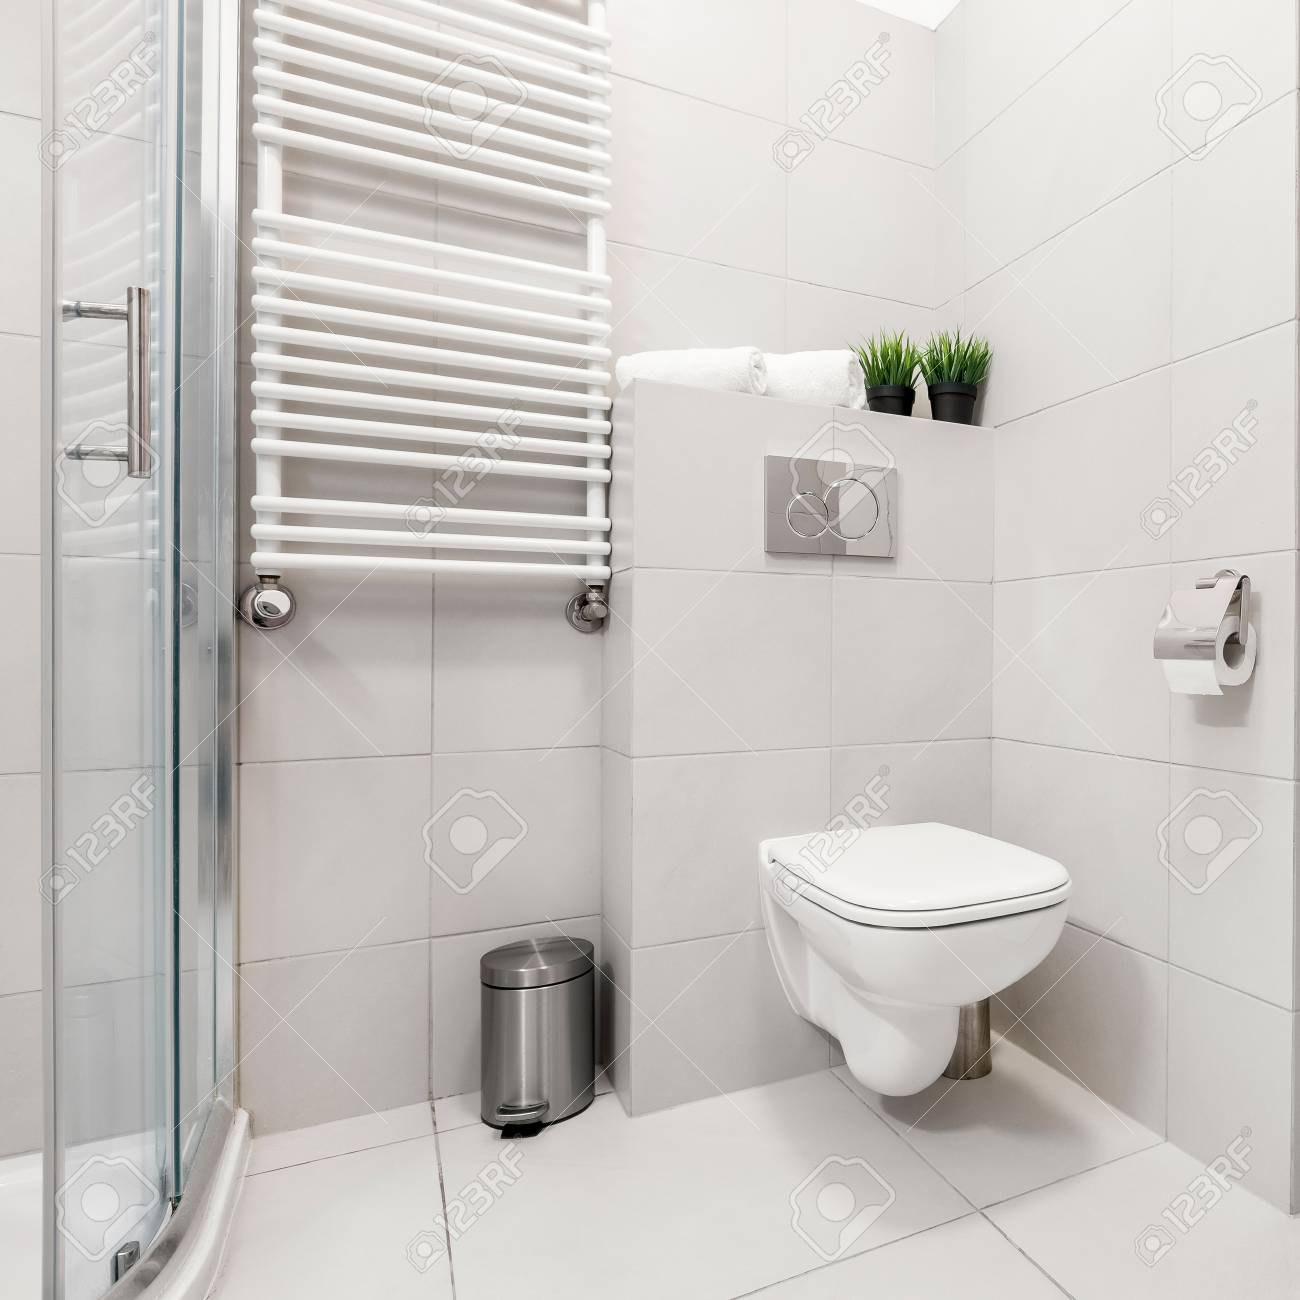 Modern, Gray Bathroom With Washer, Shower And Toilet Stock Photo ...